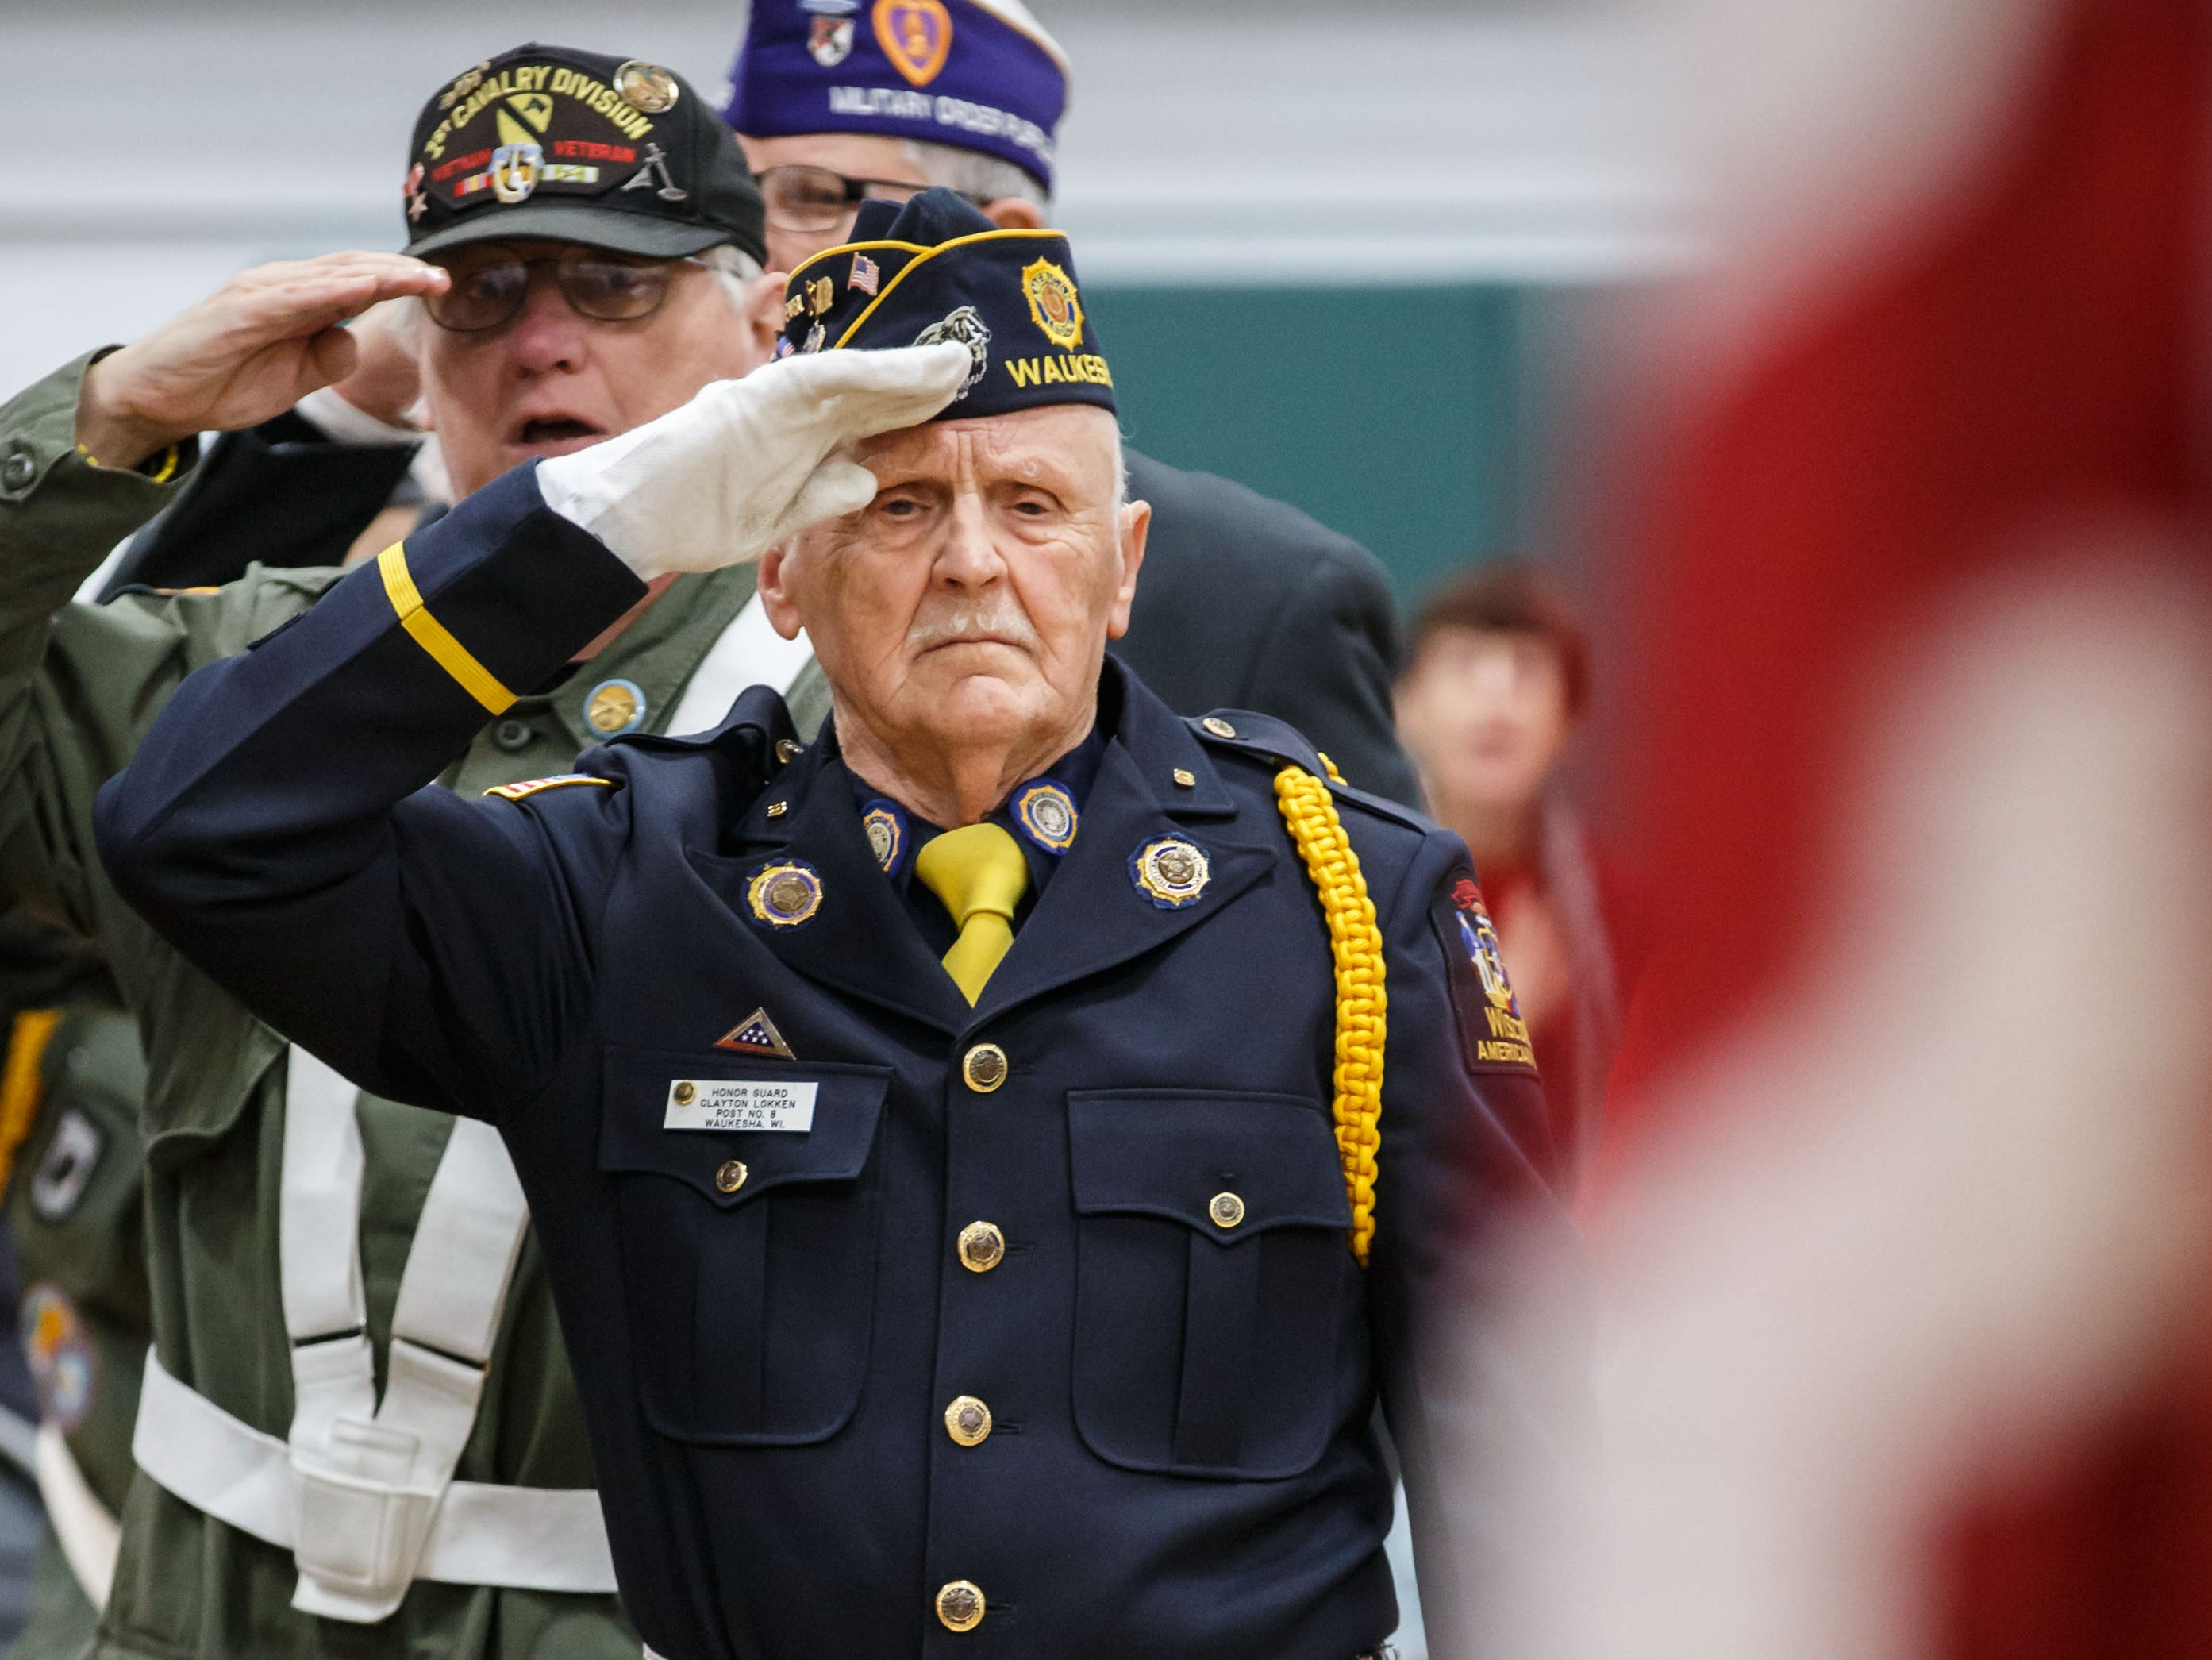 Honor Guard Clayton Lokken of American Legion Post 8 salutes the flag during the seventh annual Operation Honor: A Salute to Veterans at the Schuetze Recreation Center in Waukesha on Saturday, Nov. 10, 2018.